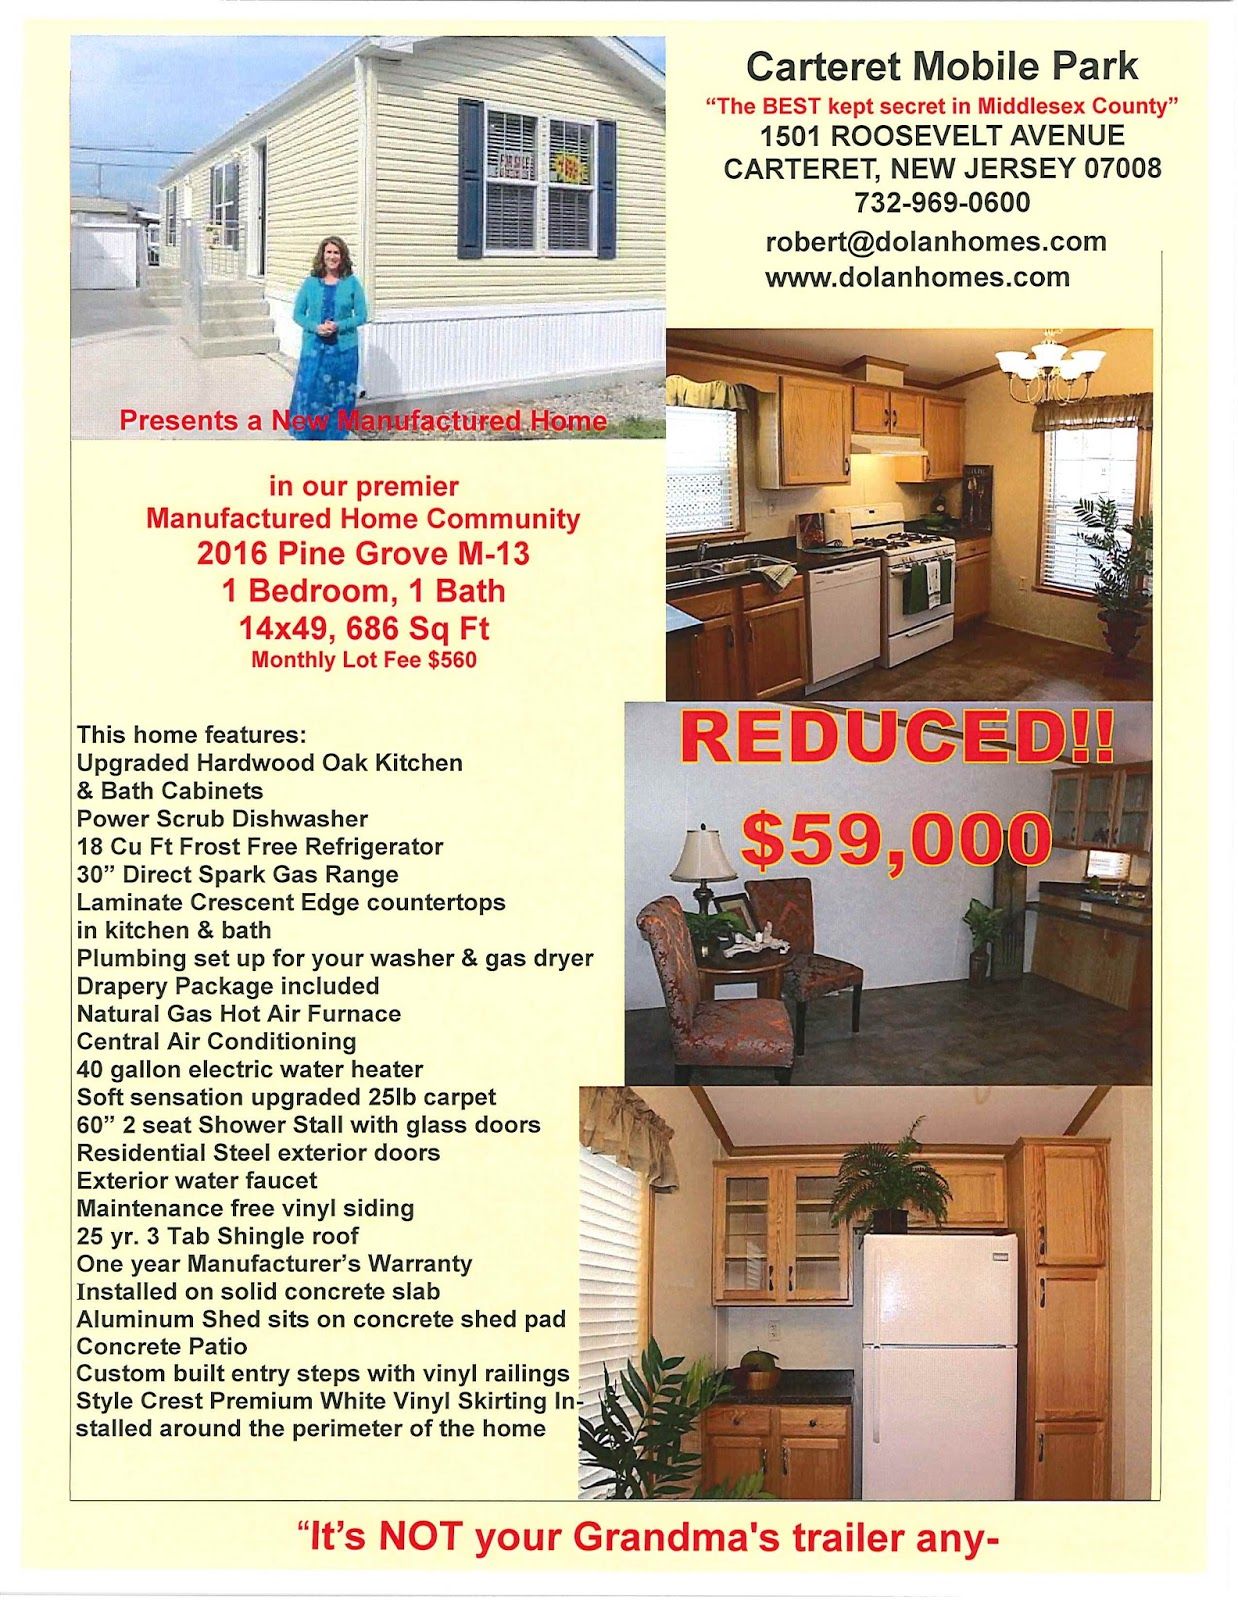 My Home In Edison Sold 1 Bedroom 1 Bath 686 Sq Ft New